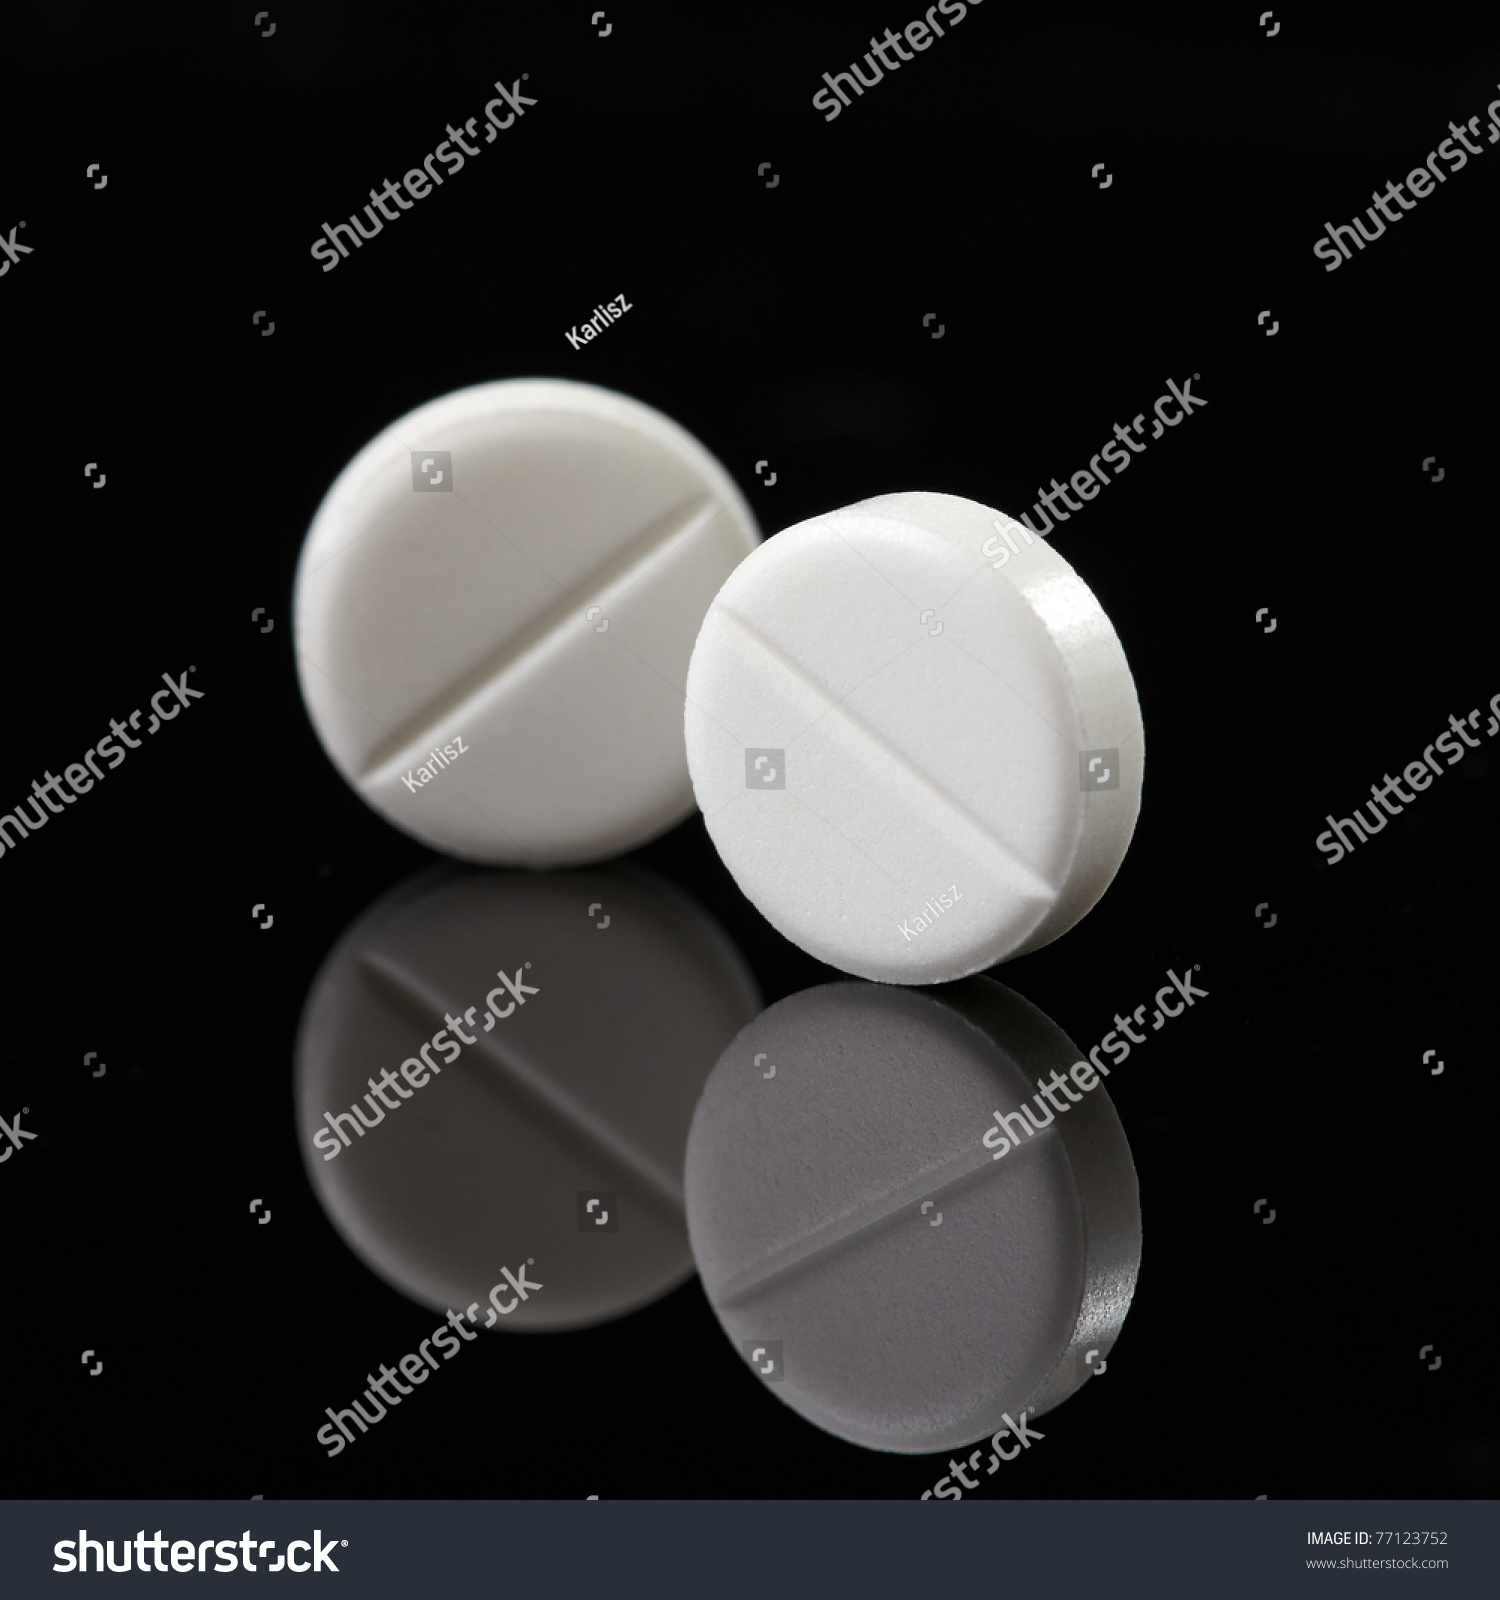 white pills on black background stock photo 77123752